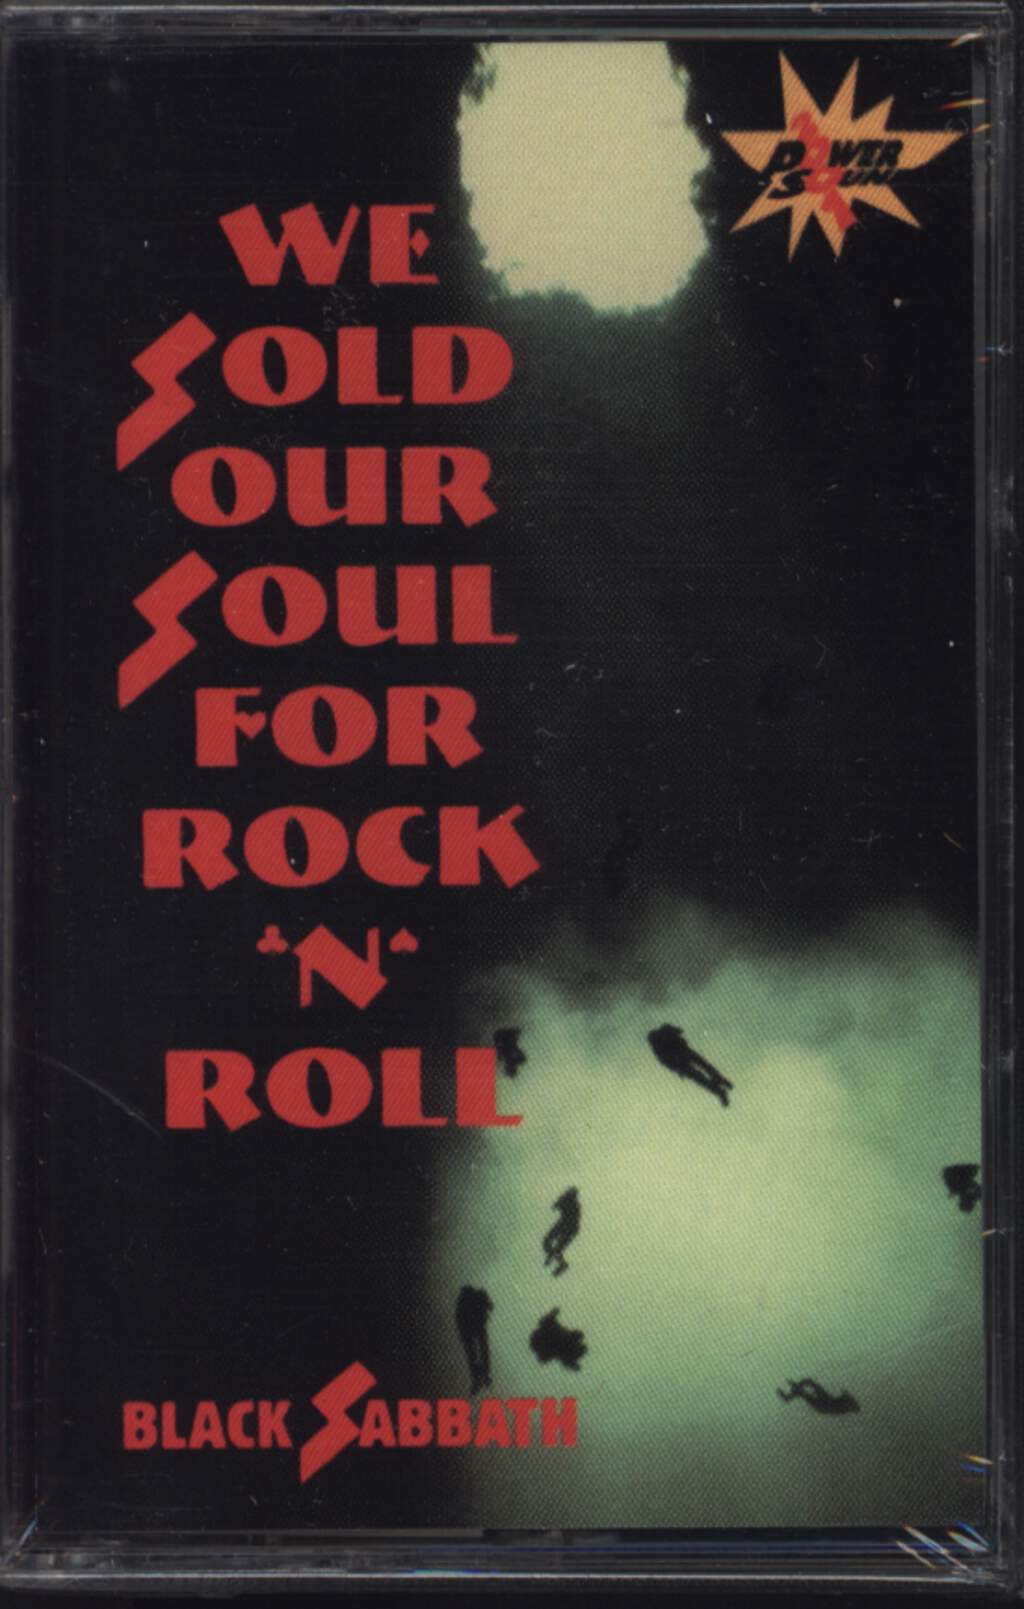 Black Sabbath: We Sold Our Soul For Rock 'N' Roll, Compact Cassette